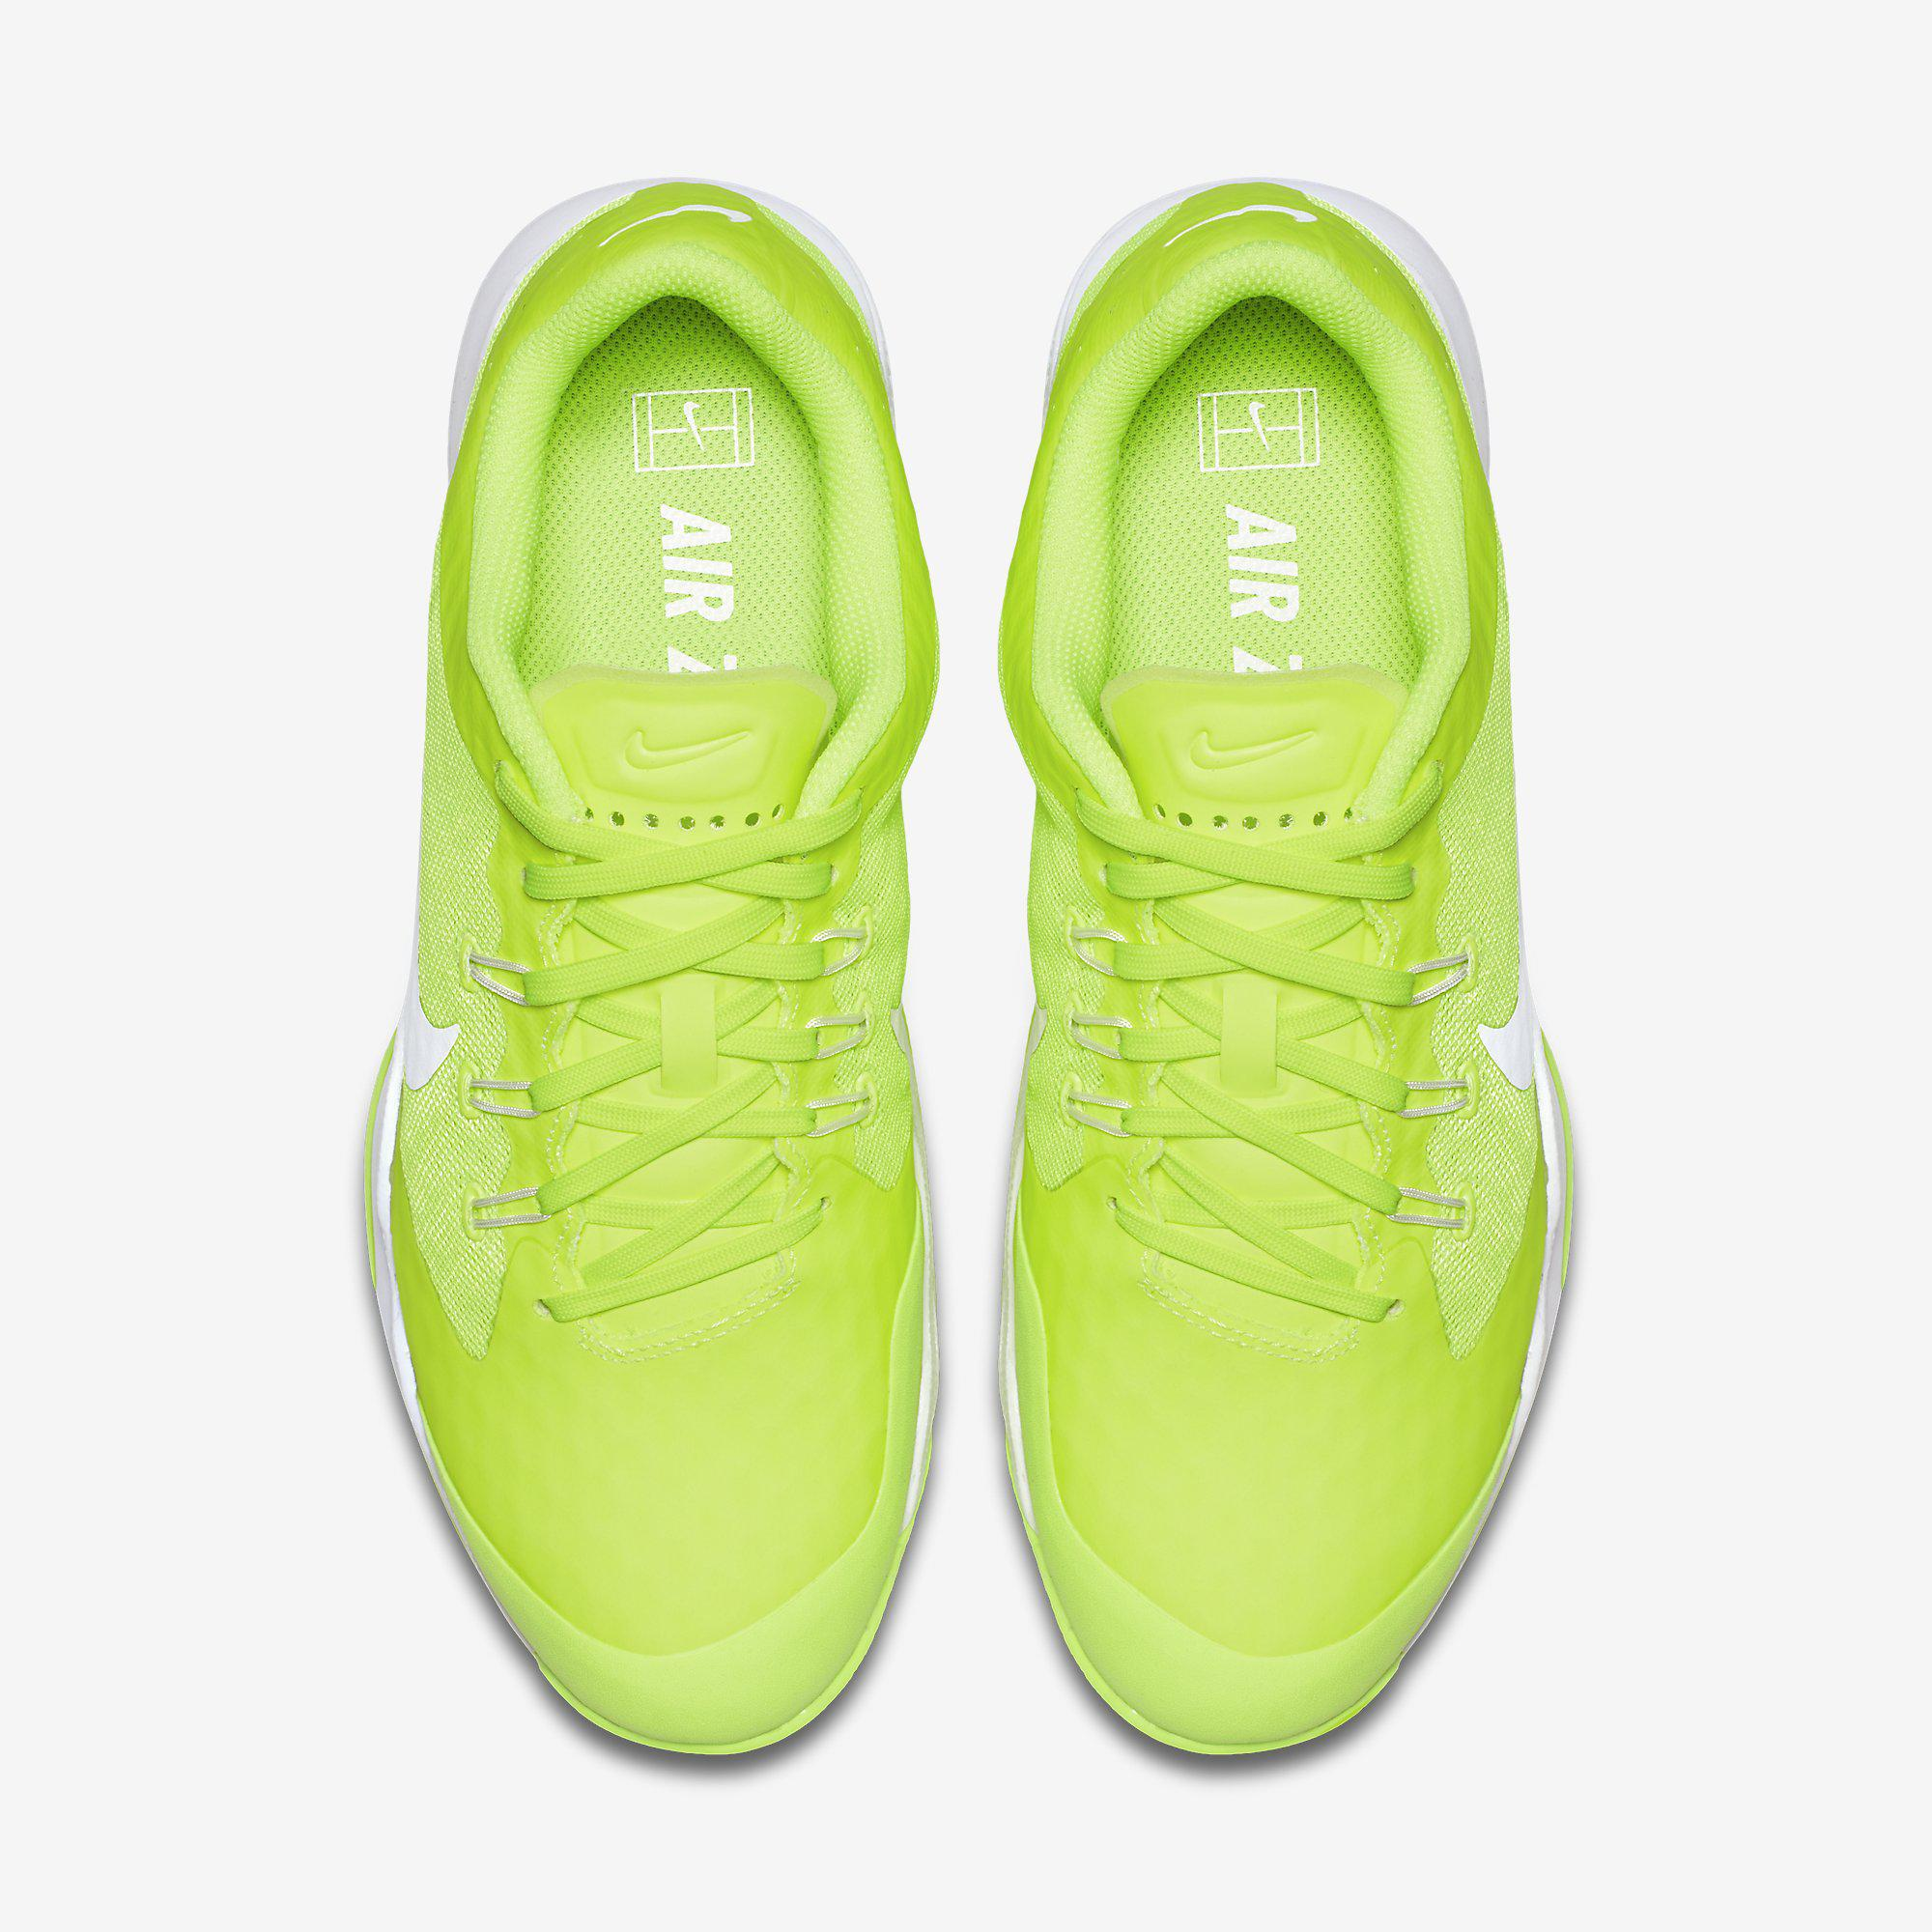 Ultra Zoom Shoes Womens Volt Tennis Nike Air qtEg4cT